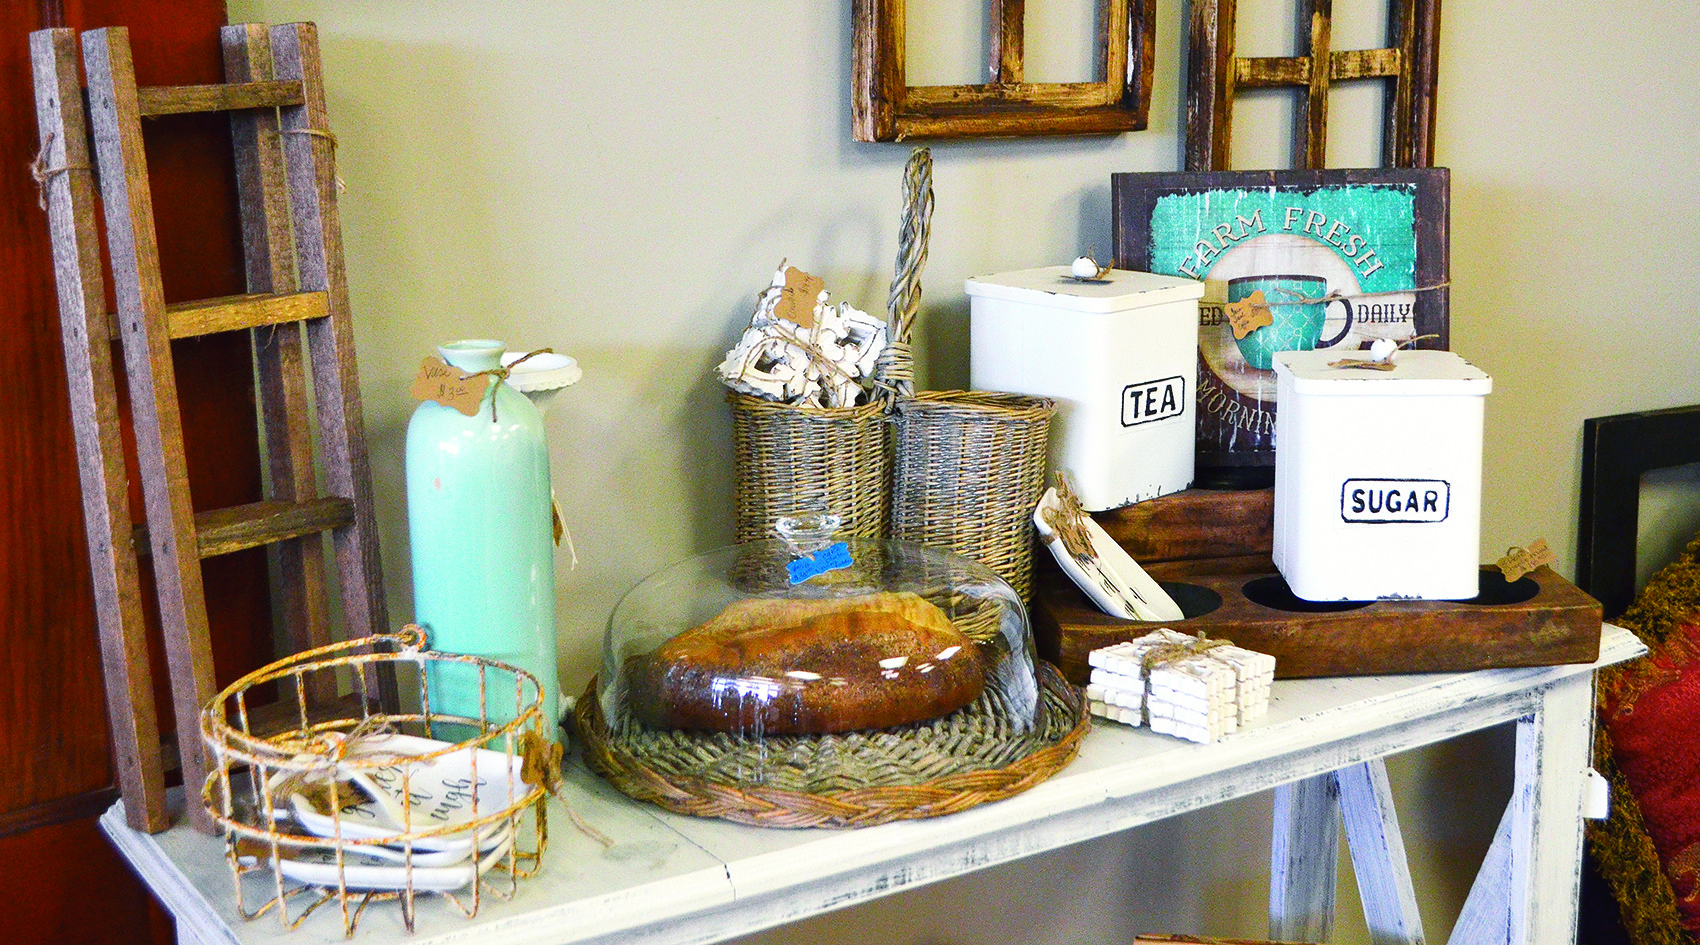 The Tin Cup Market has many unique home decor items for sale.